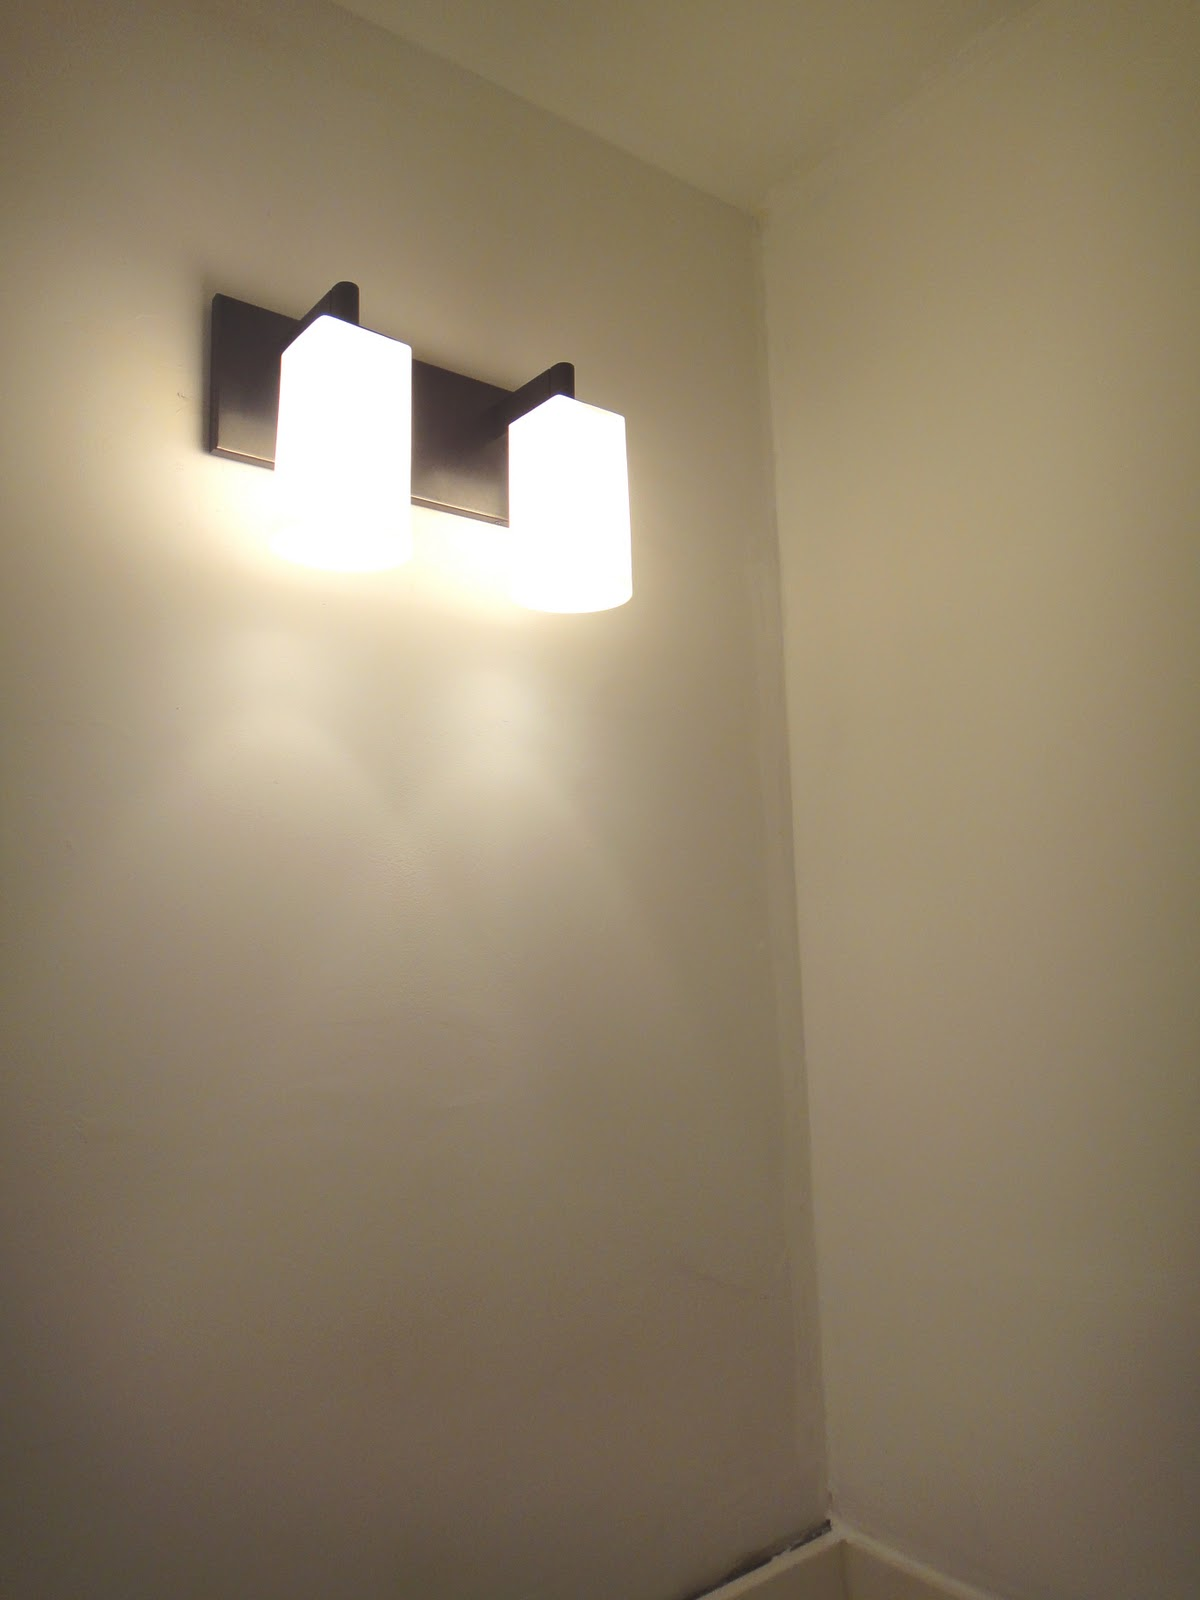 Bathroom Vanity Light Fixture With Electrical Outlet : Bathroom Lighting With Electrical Outlet Simple Home Decoration